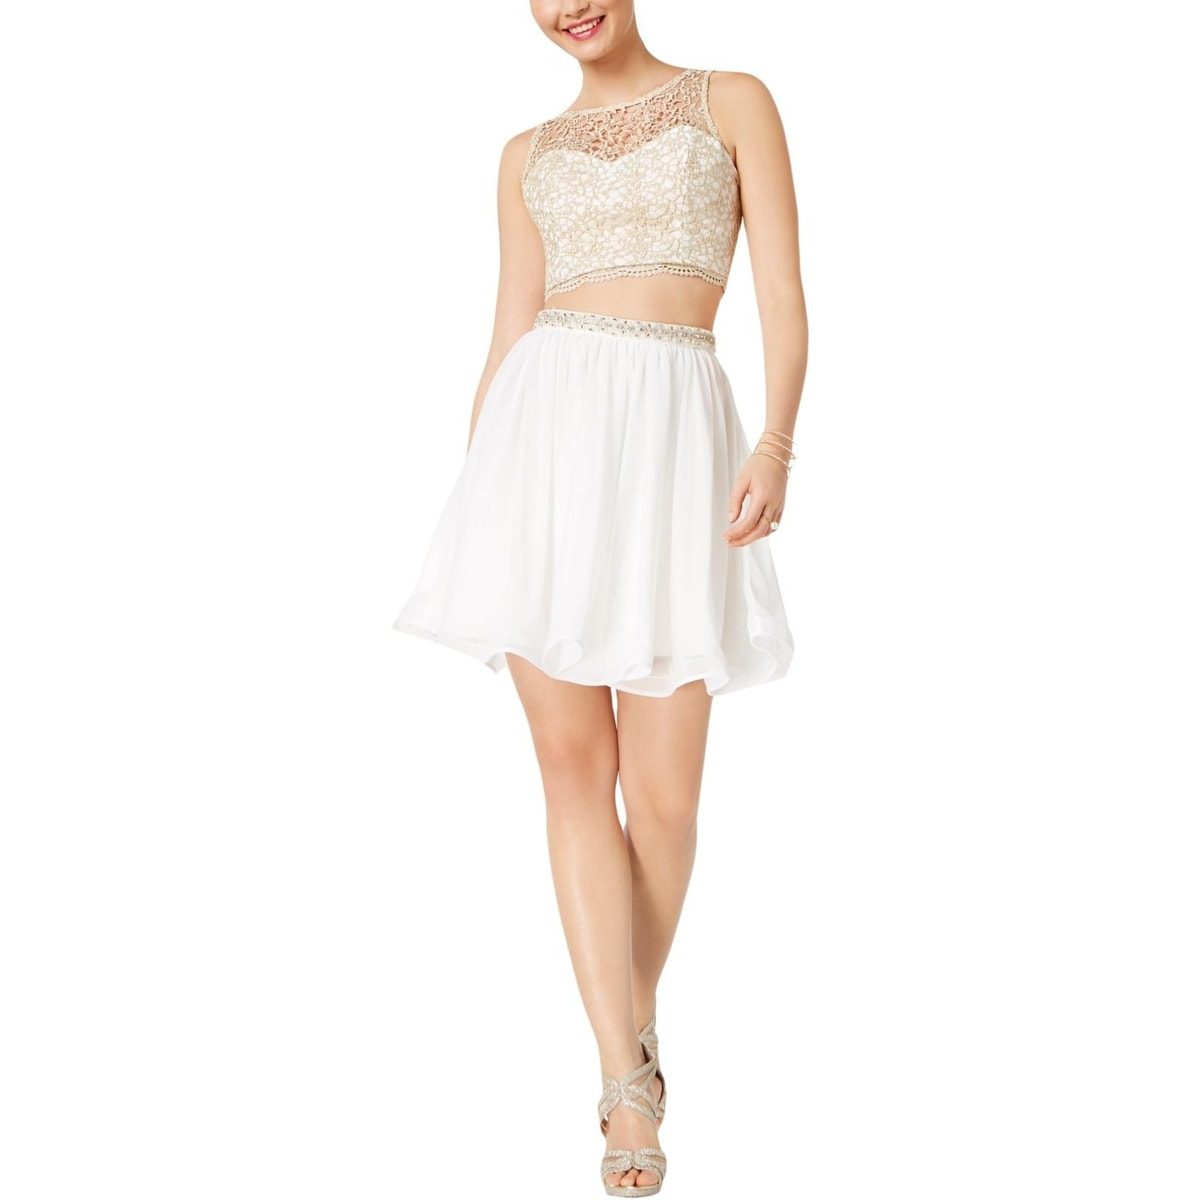 053e5539 Buy Juniors' Dresses Online at Overstock | Our Best Juniors' Clothing Deals